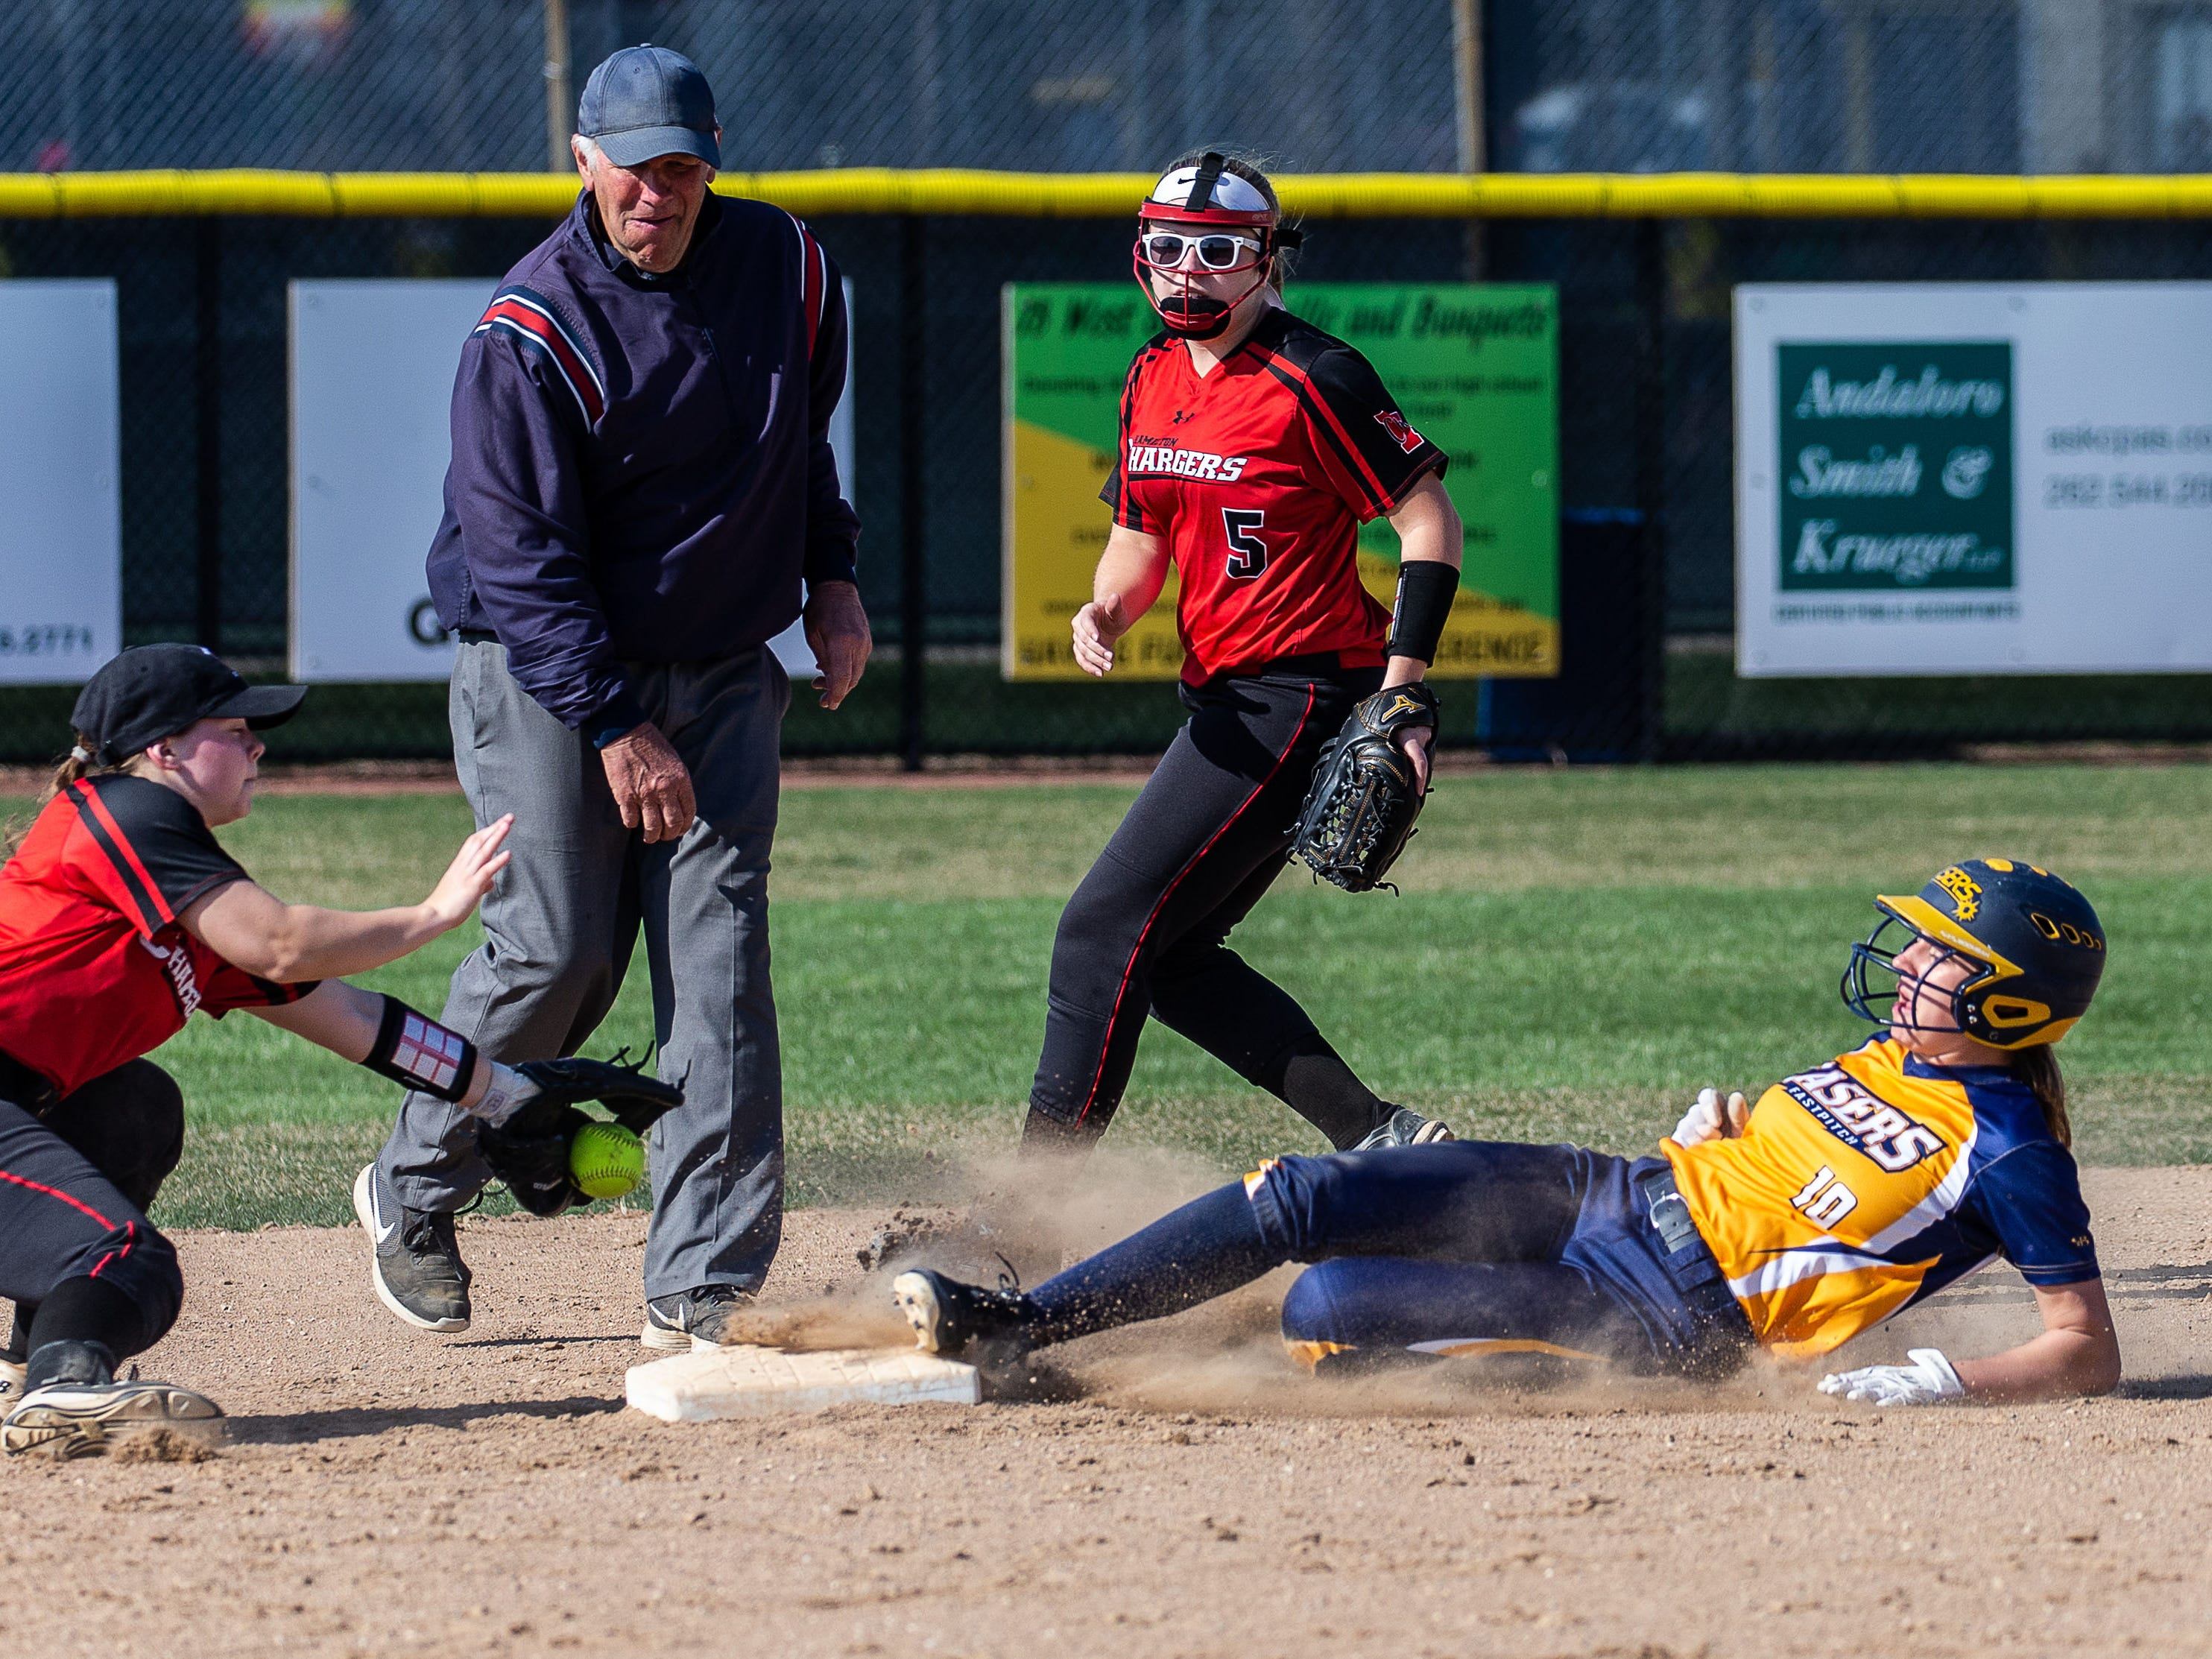 Kettle Moraine's Claudia Buchholz (10) steals second base during the game at home against Sussex Hamilton on Wednesday, April 24, 2019.